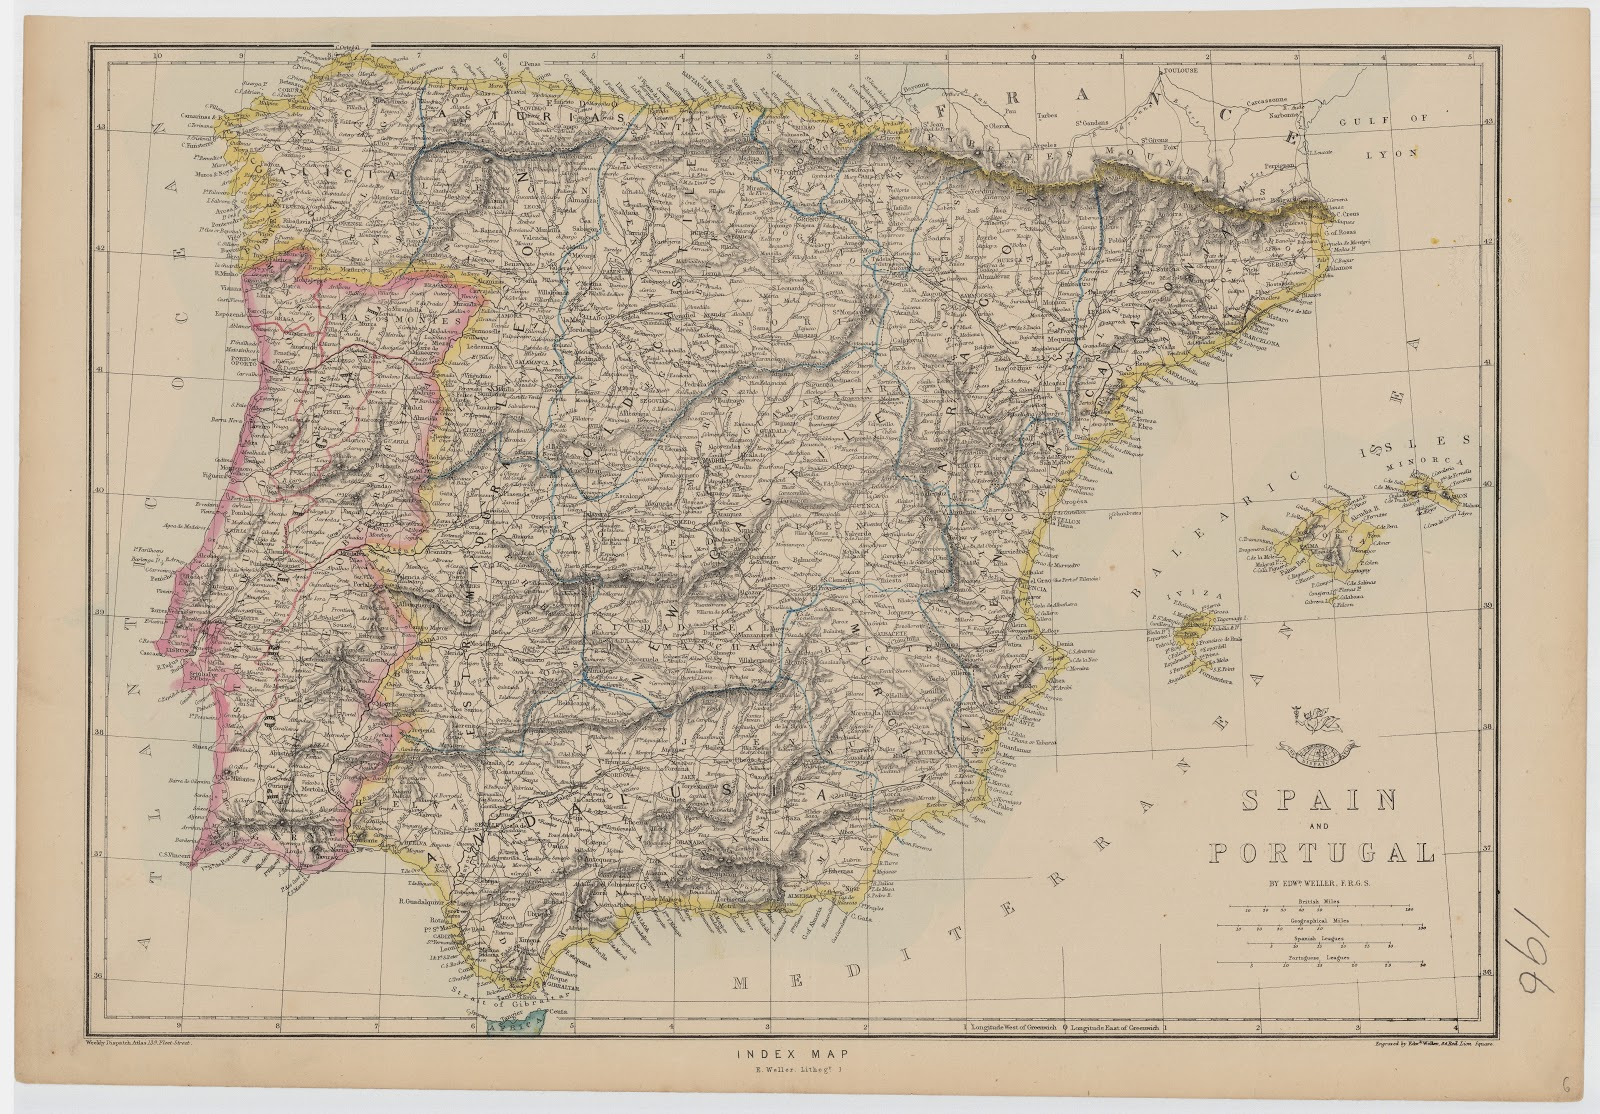 España y Portugal, Edward Weller 1870